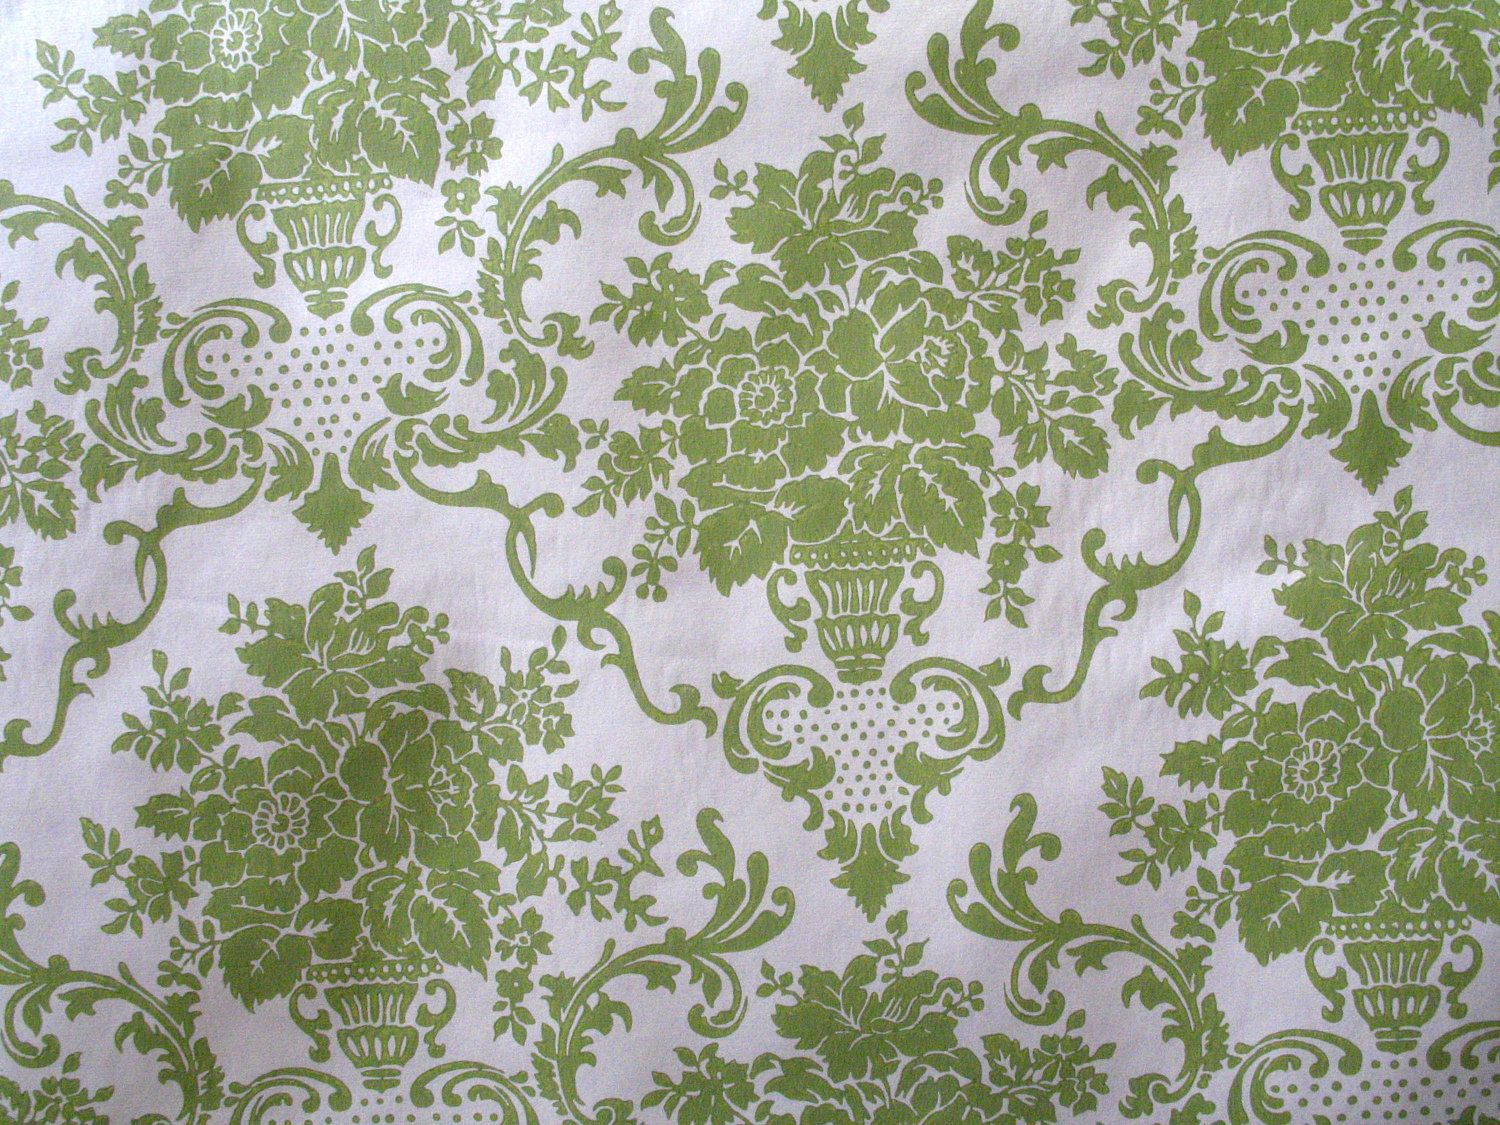 Shelf Contact Paper Vintage Green And White Damask Pattern Wallpaper 525 Via Etsy